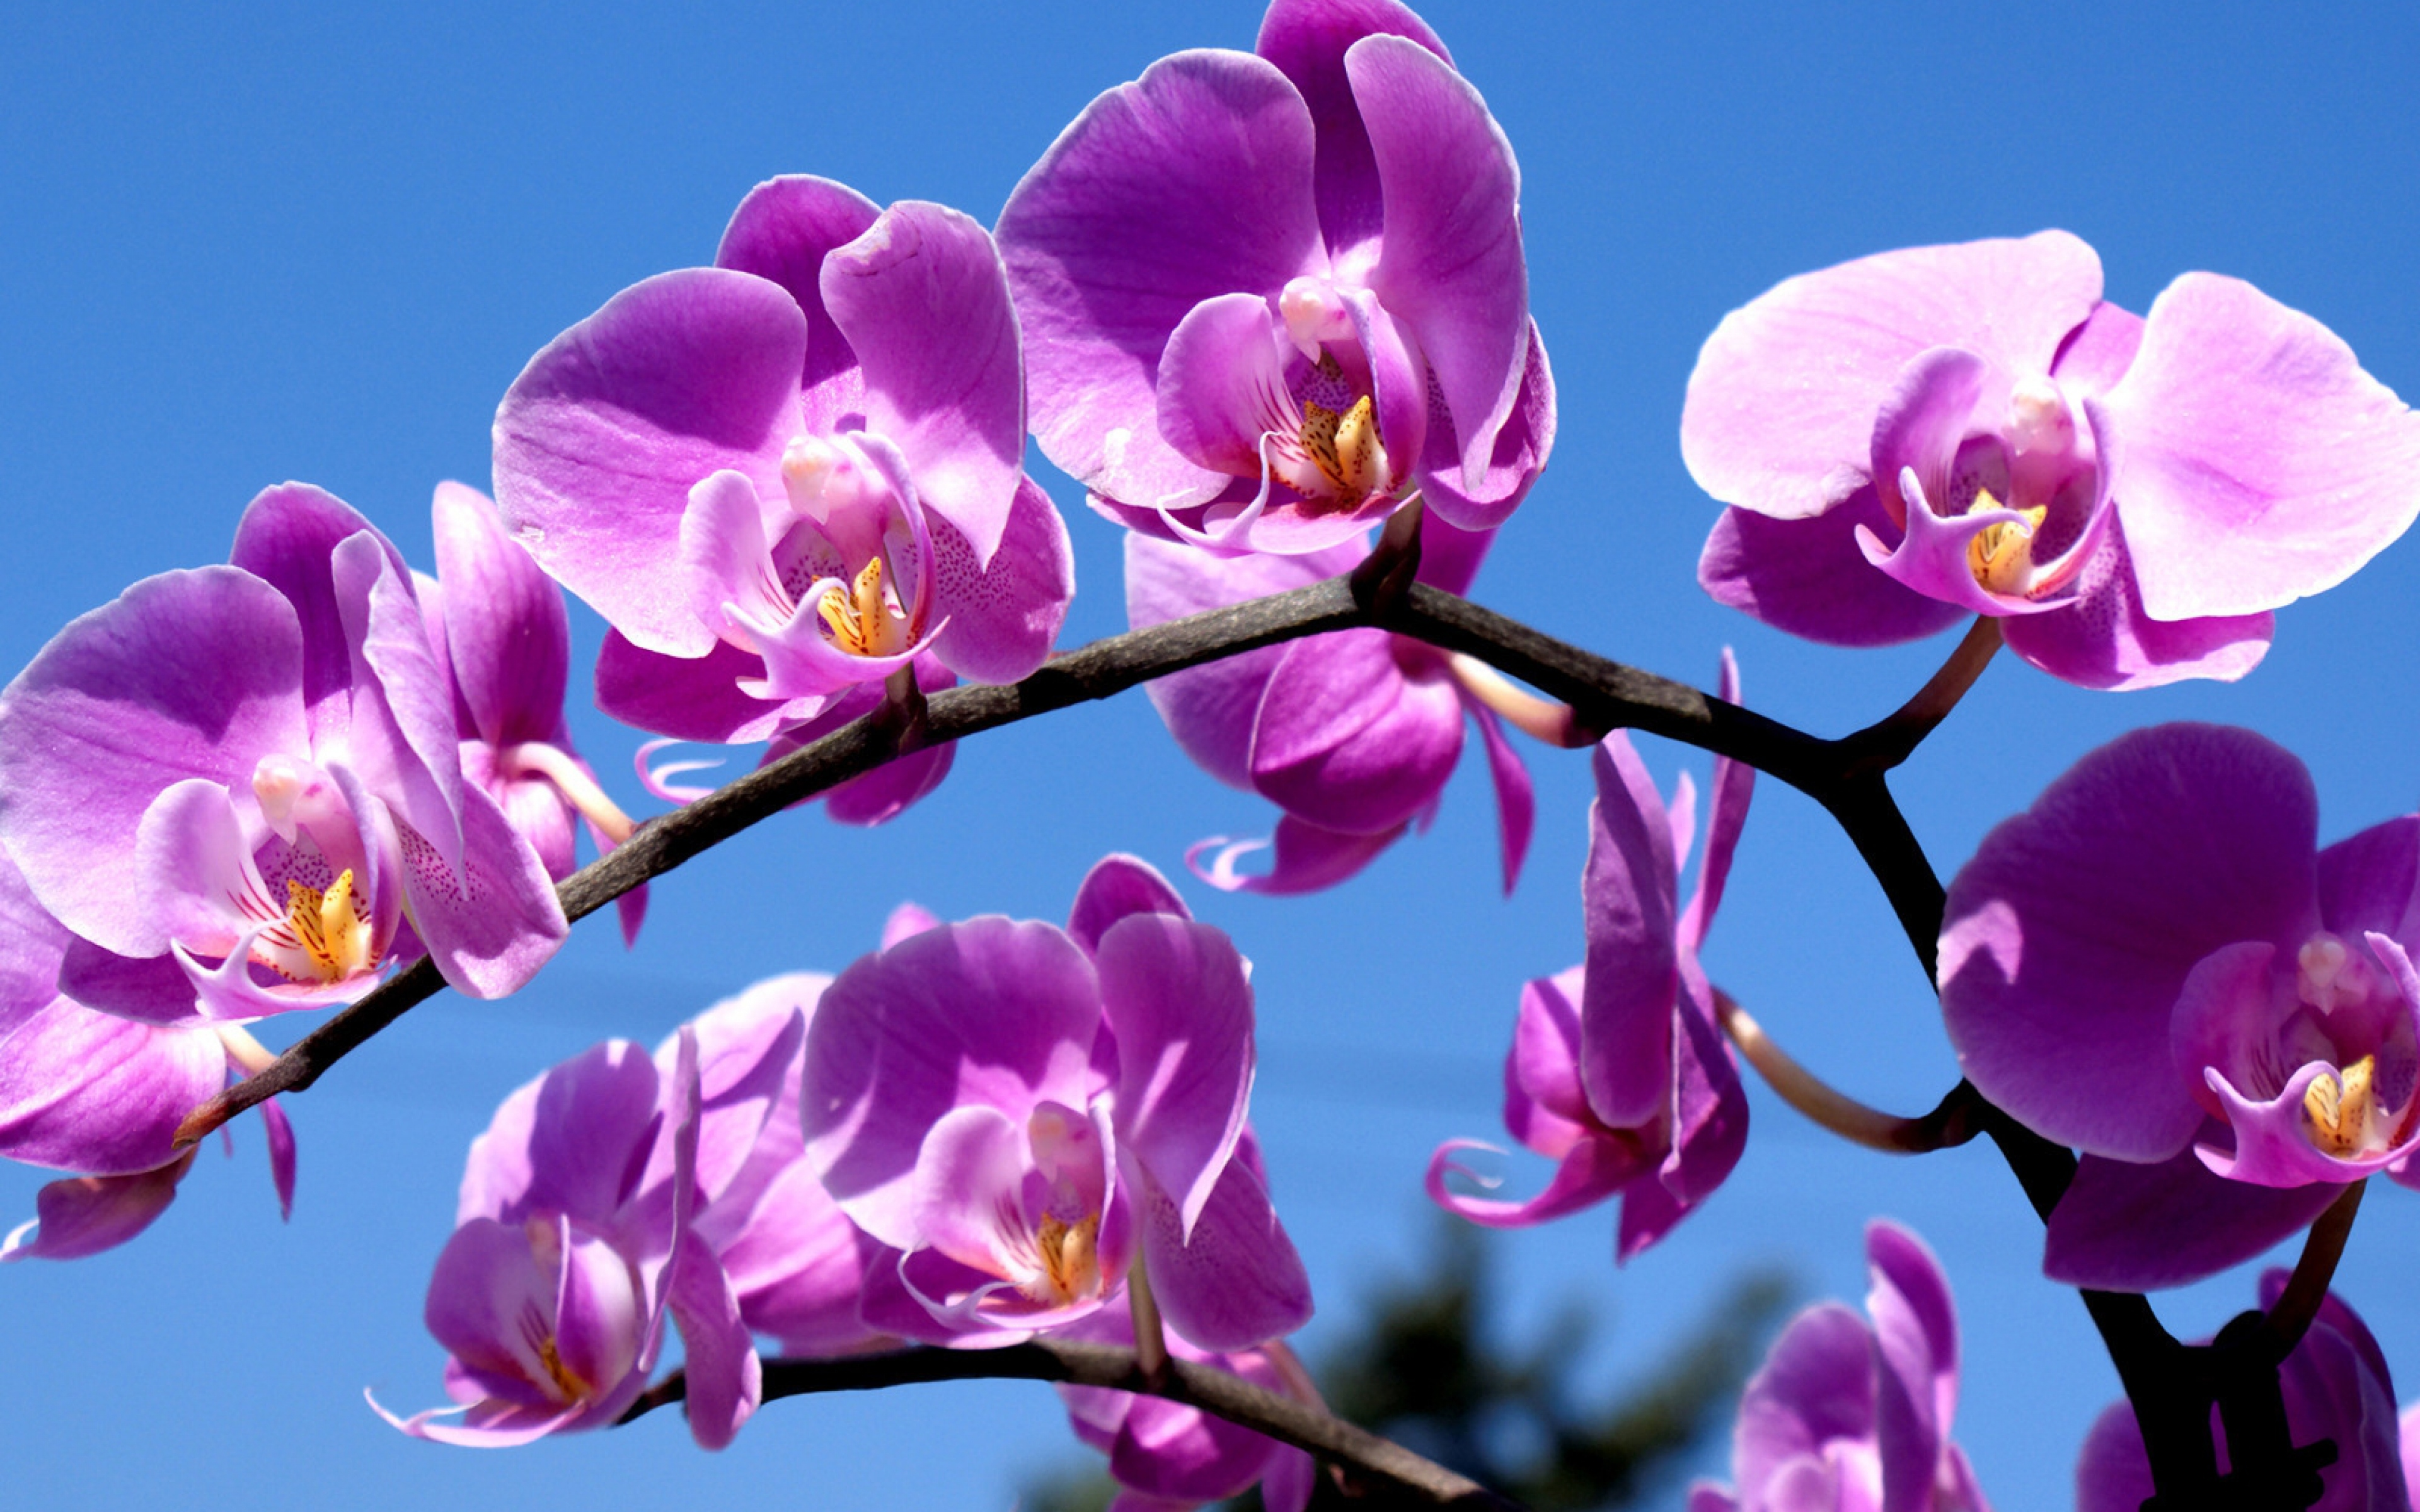 orchid flower hd wallpapers  all about orchid and tulip flowers, Natural flower